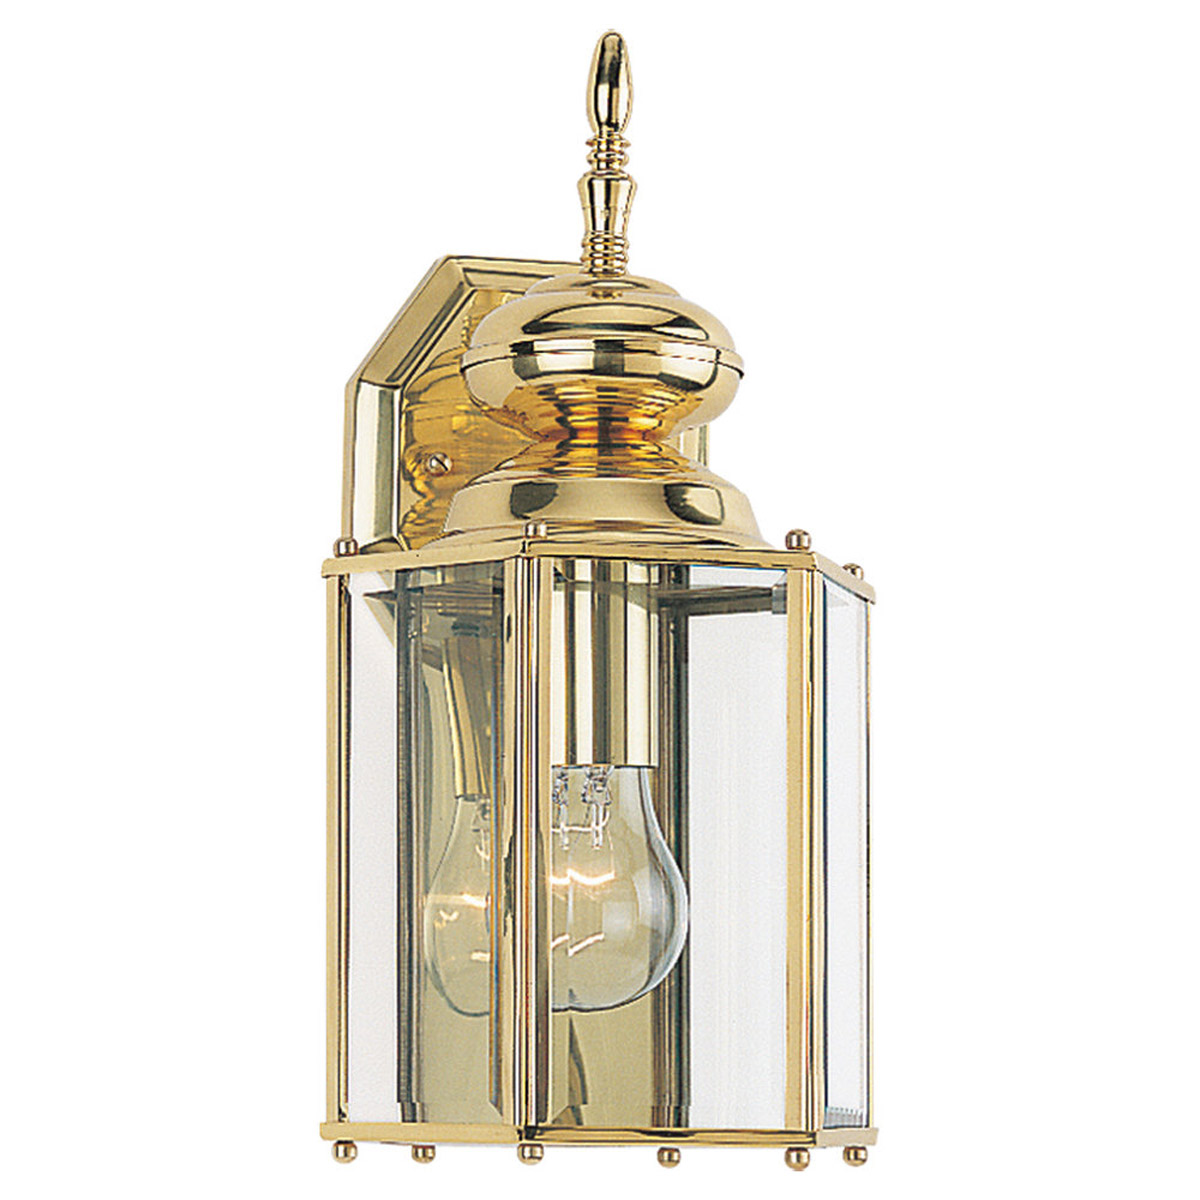 Sea Gull Lighting Classico 1 Light Outdoor Wall Lantern in Polished Brass 8509-02 photo